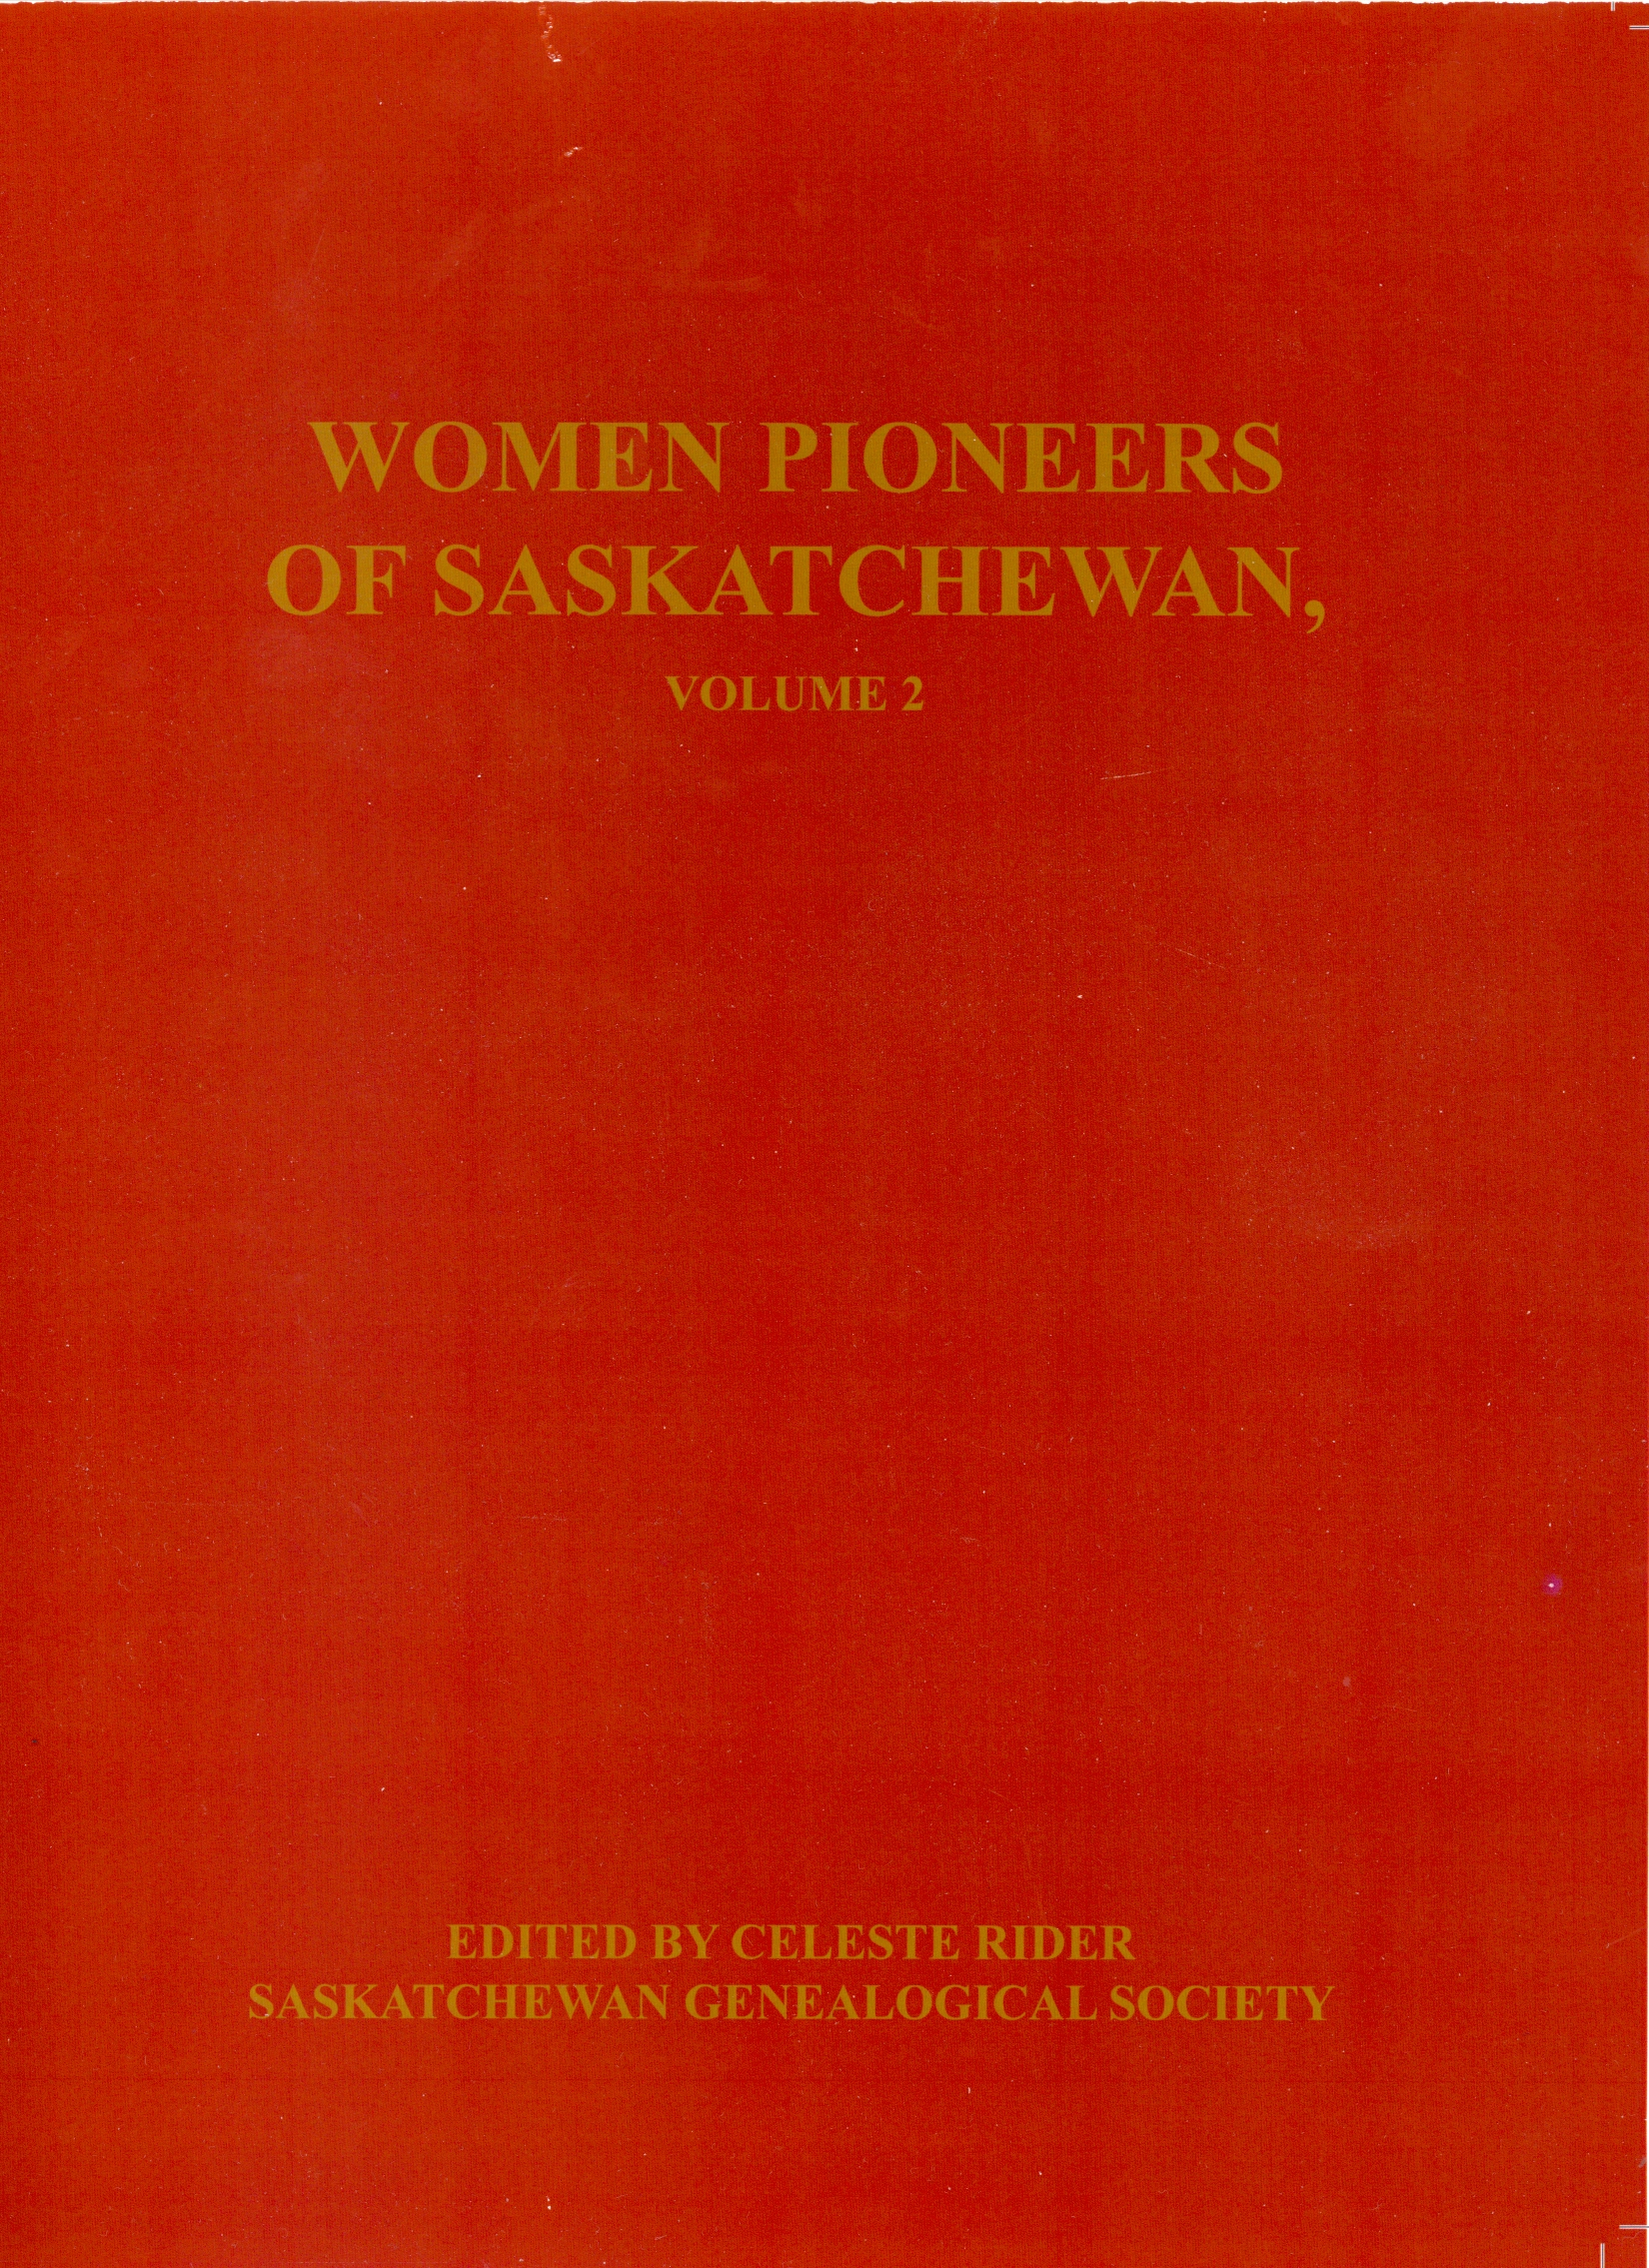 Sgs publications saskatchewan genealogical society contains approximately 300 pages of stories and facts about more than 180 women pioneers in saskatchewan some of these women were born in saskatchewan aiddatafo Choice Image